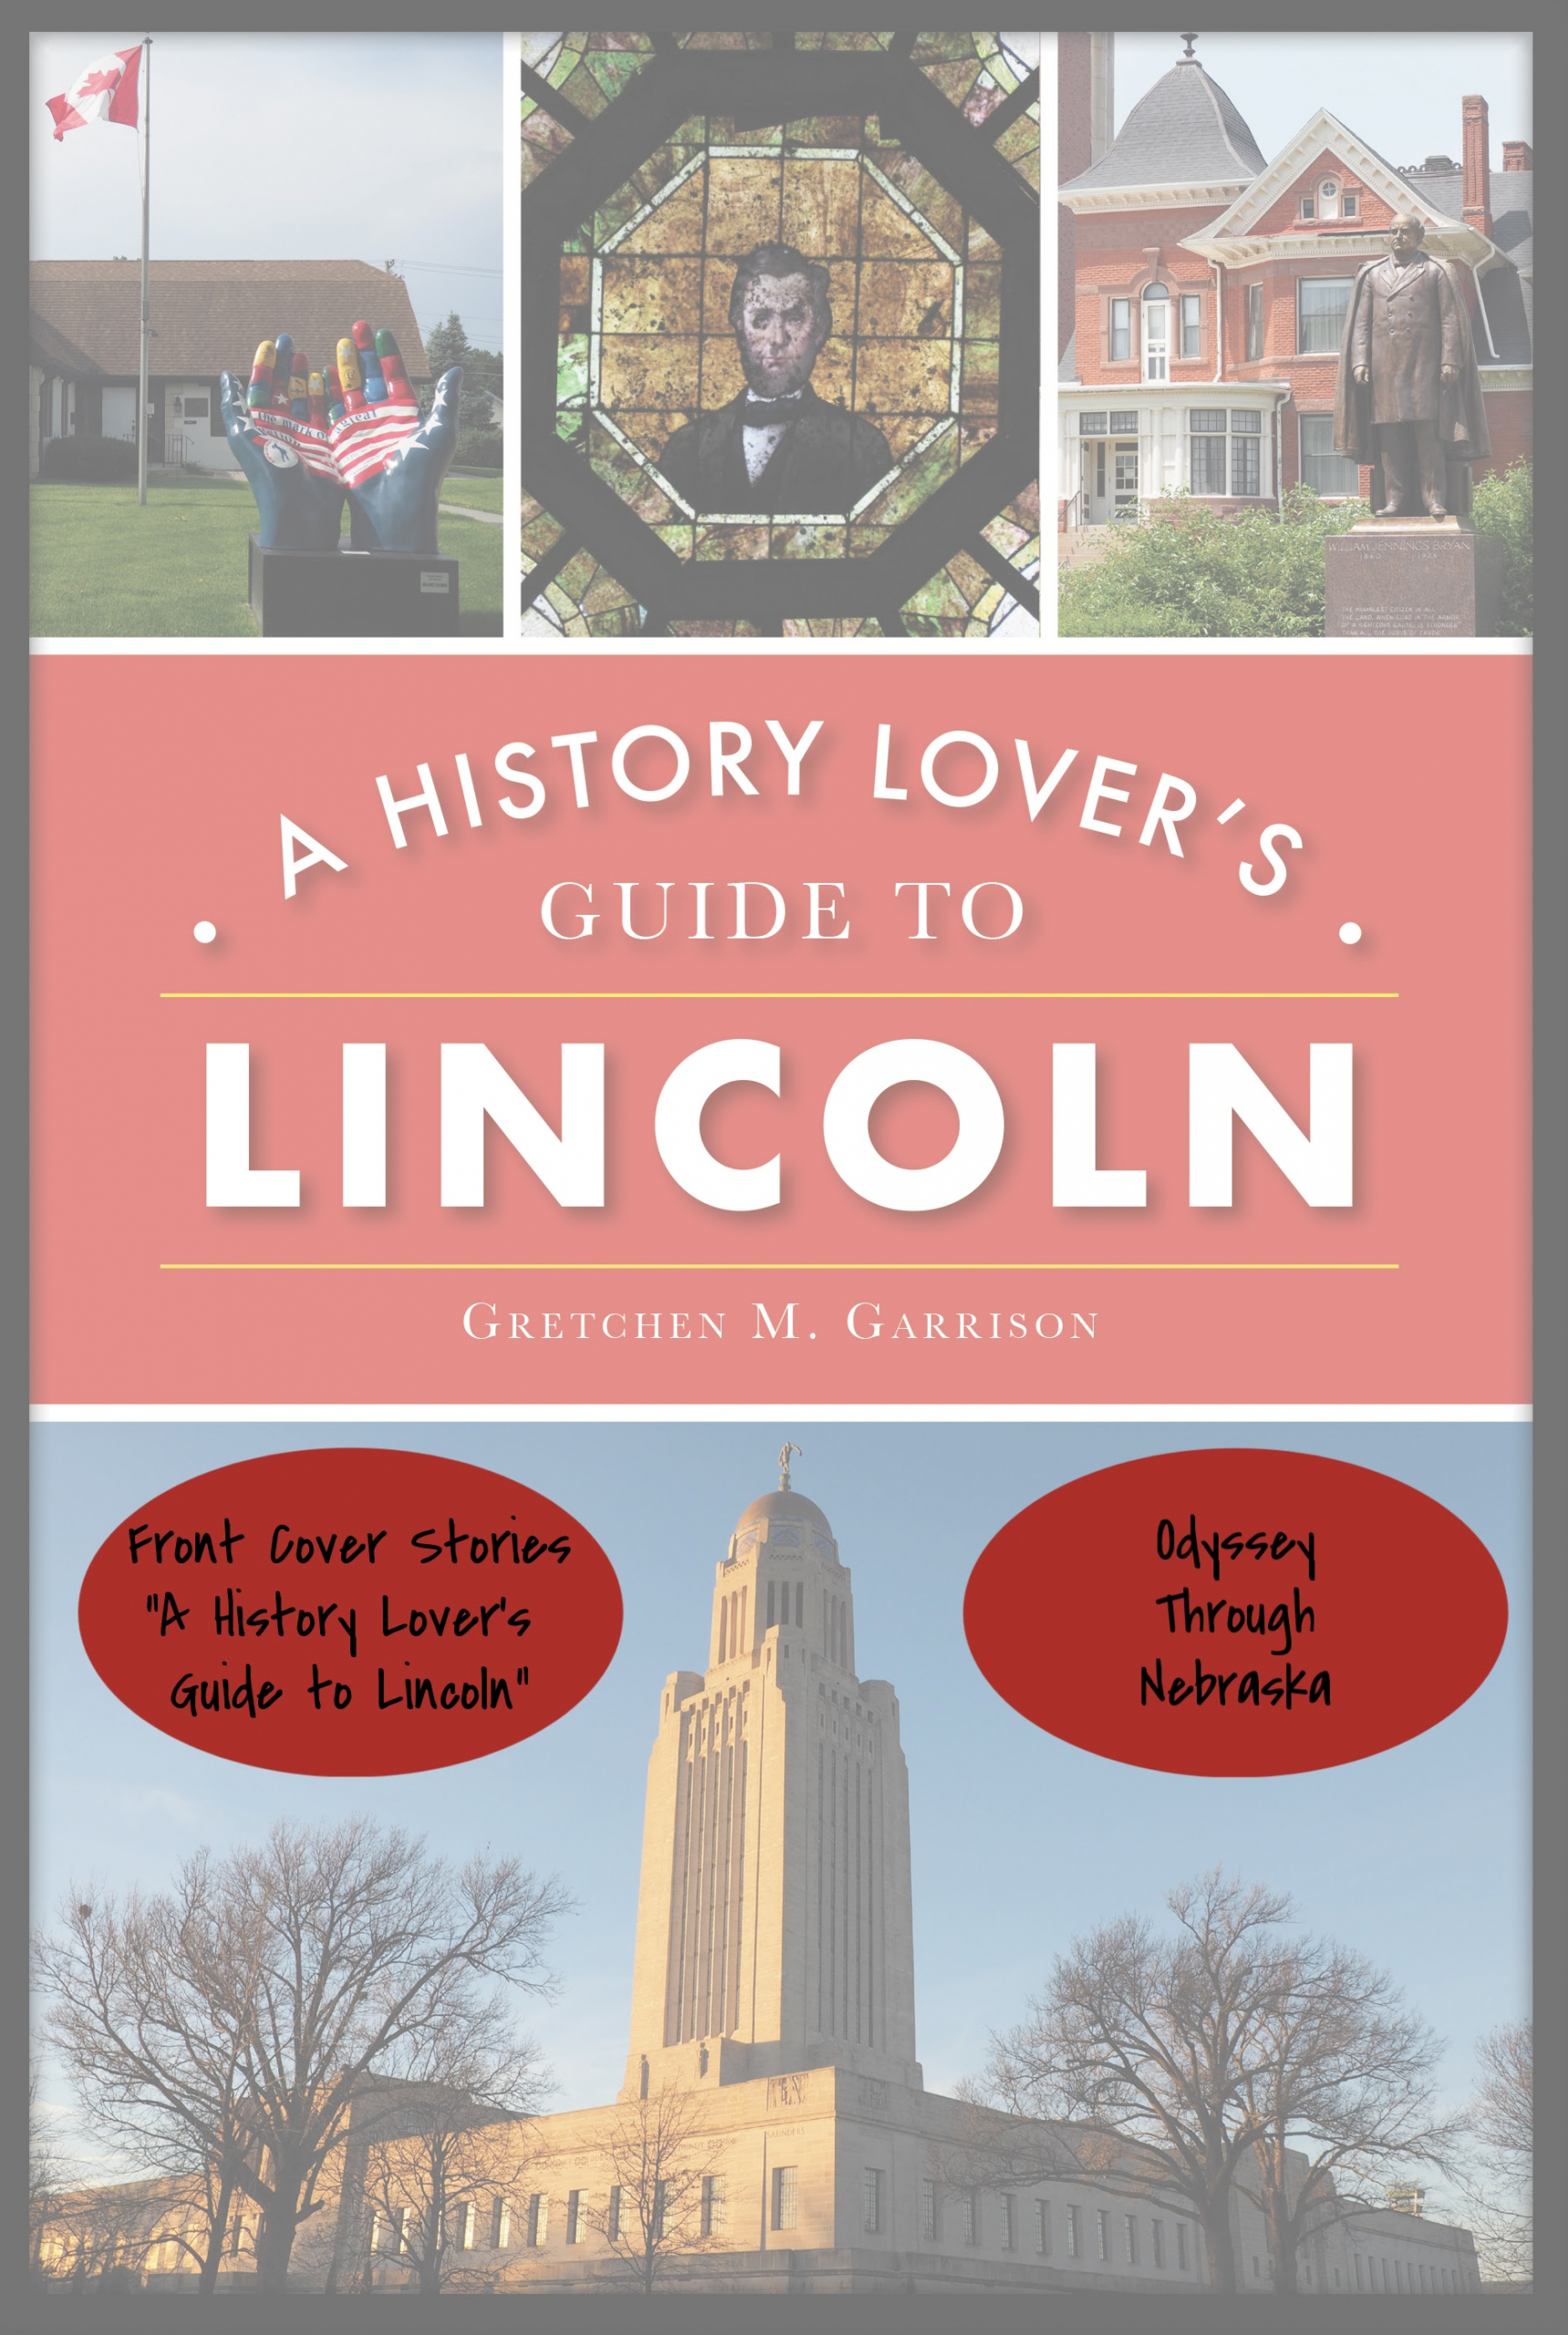 History Lover's Guide to Lincoln front cover stories